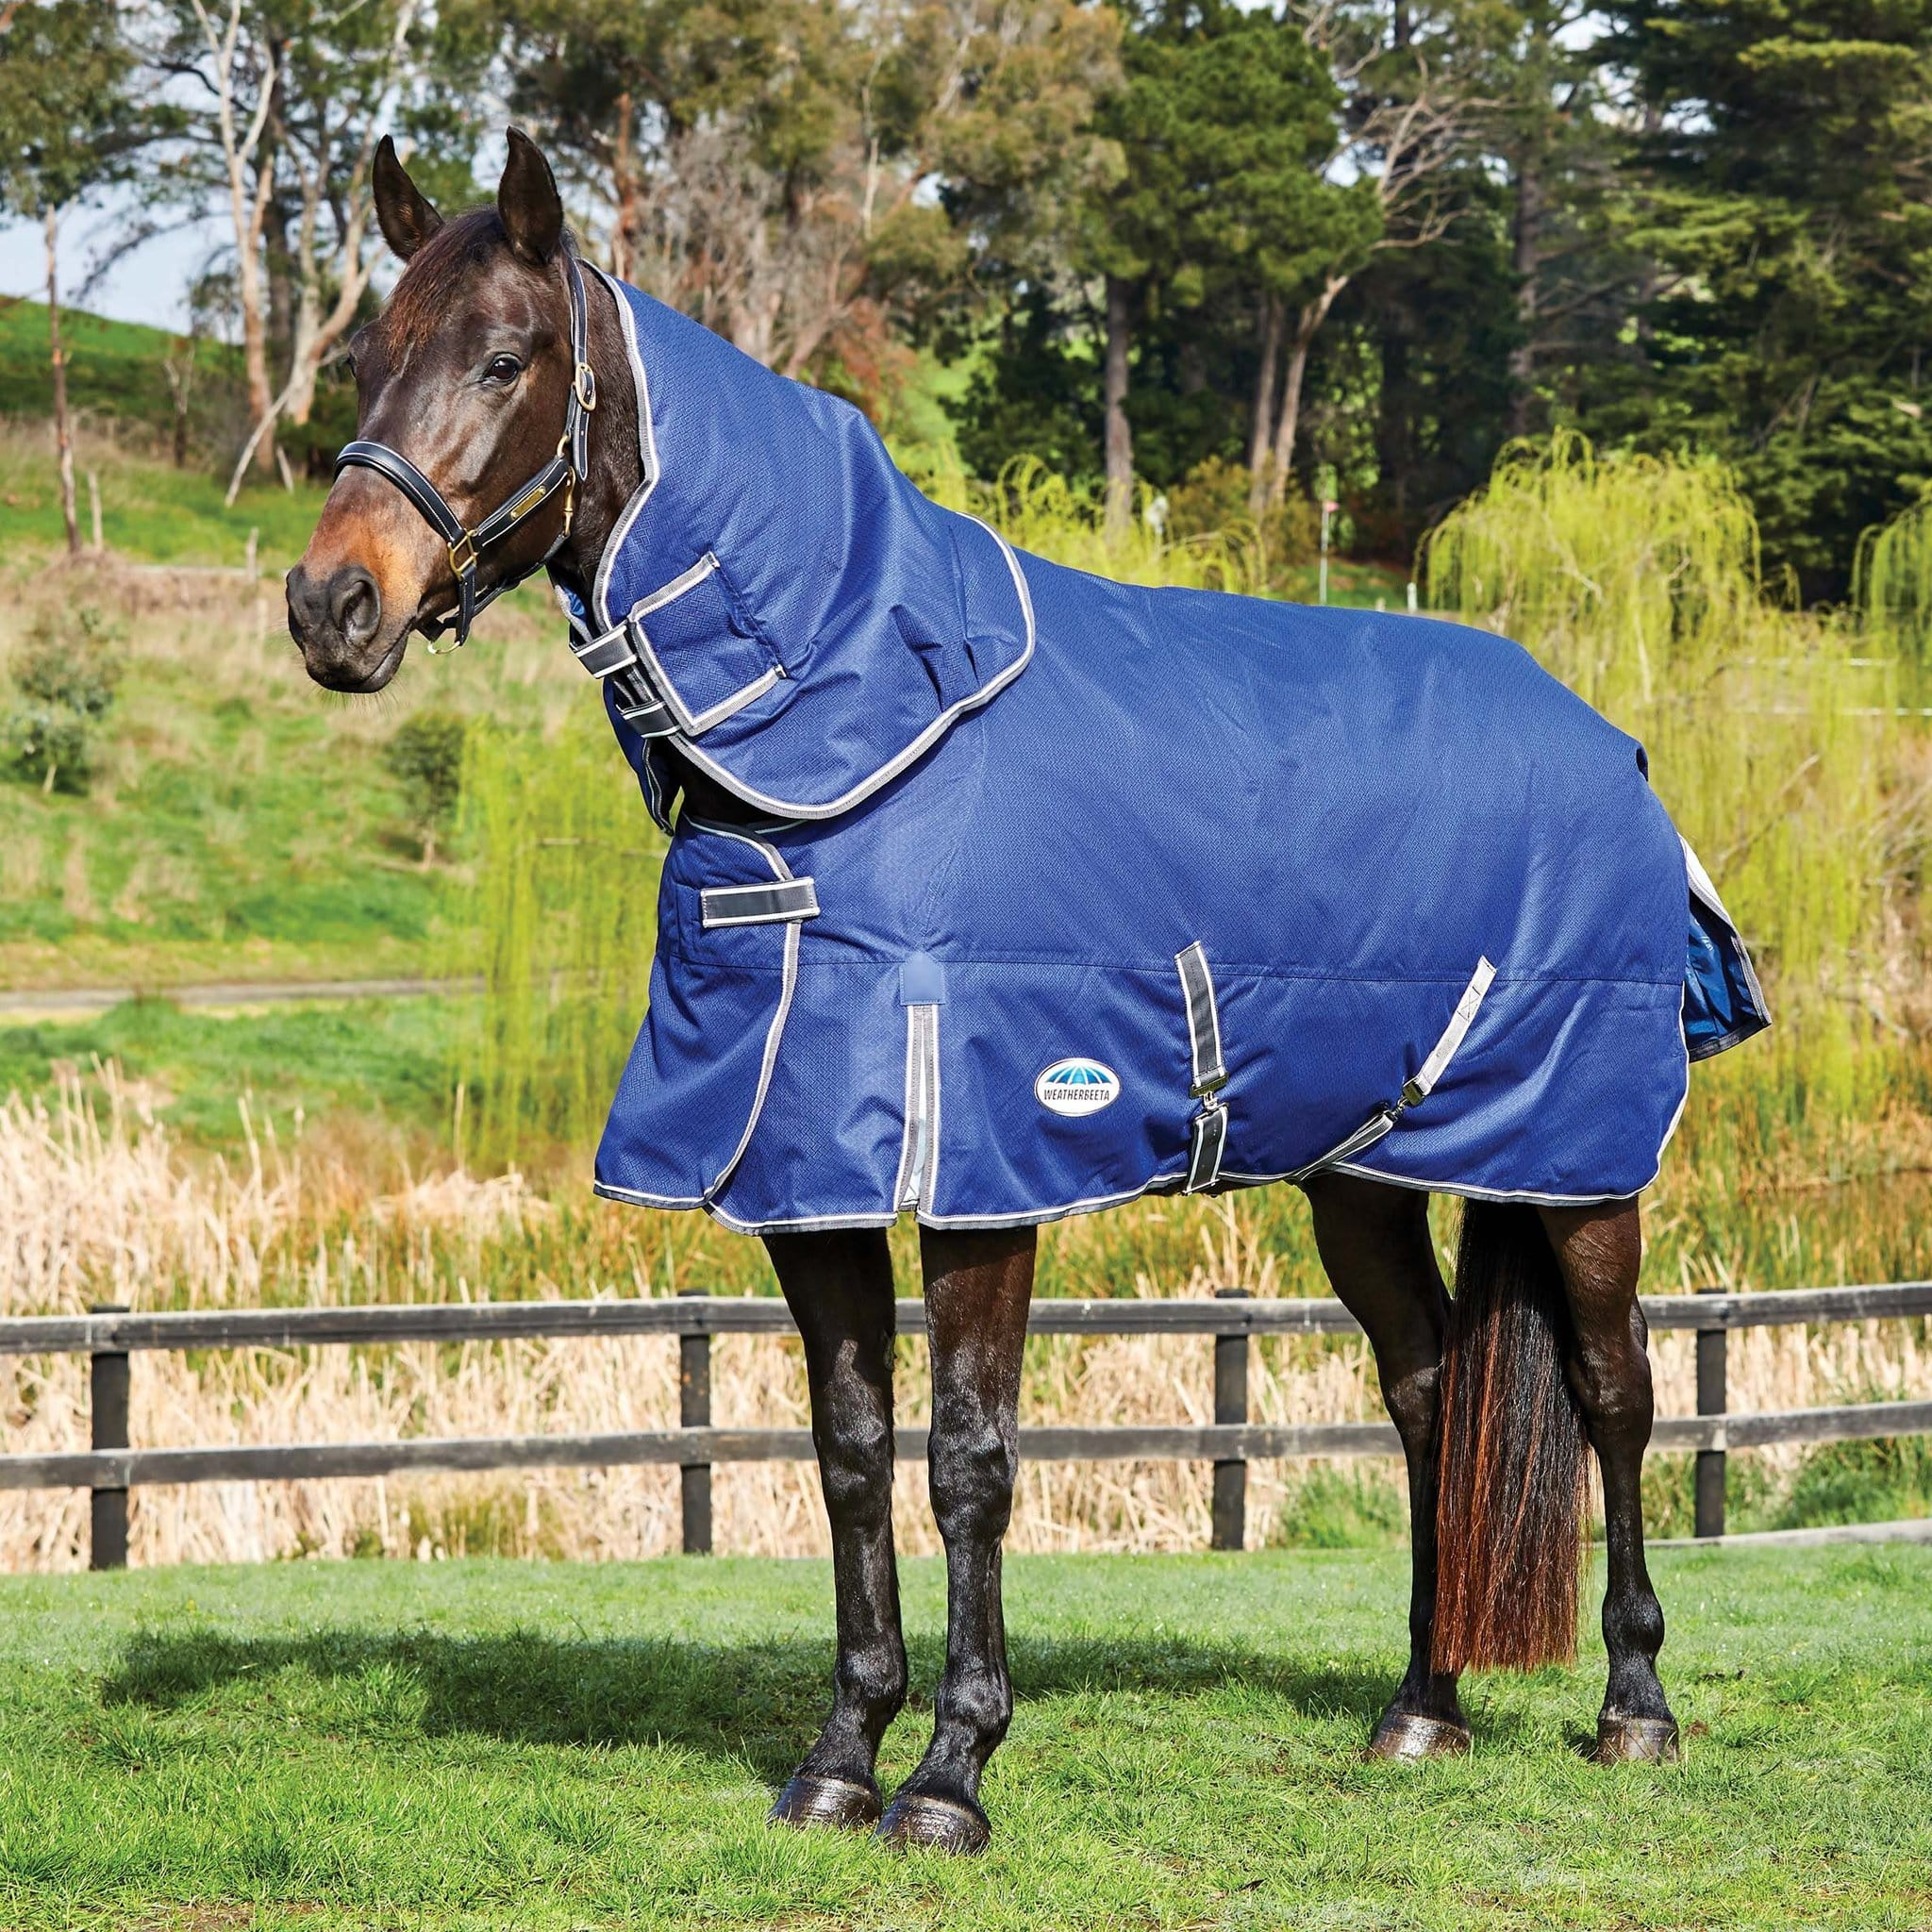 Weatherbeeta ComFiTec Premier Free II Heavyweight 360g Detachable Neck Turnout Rug Blue 1003671003